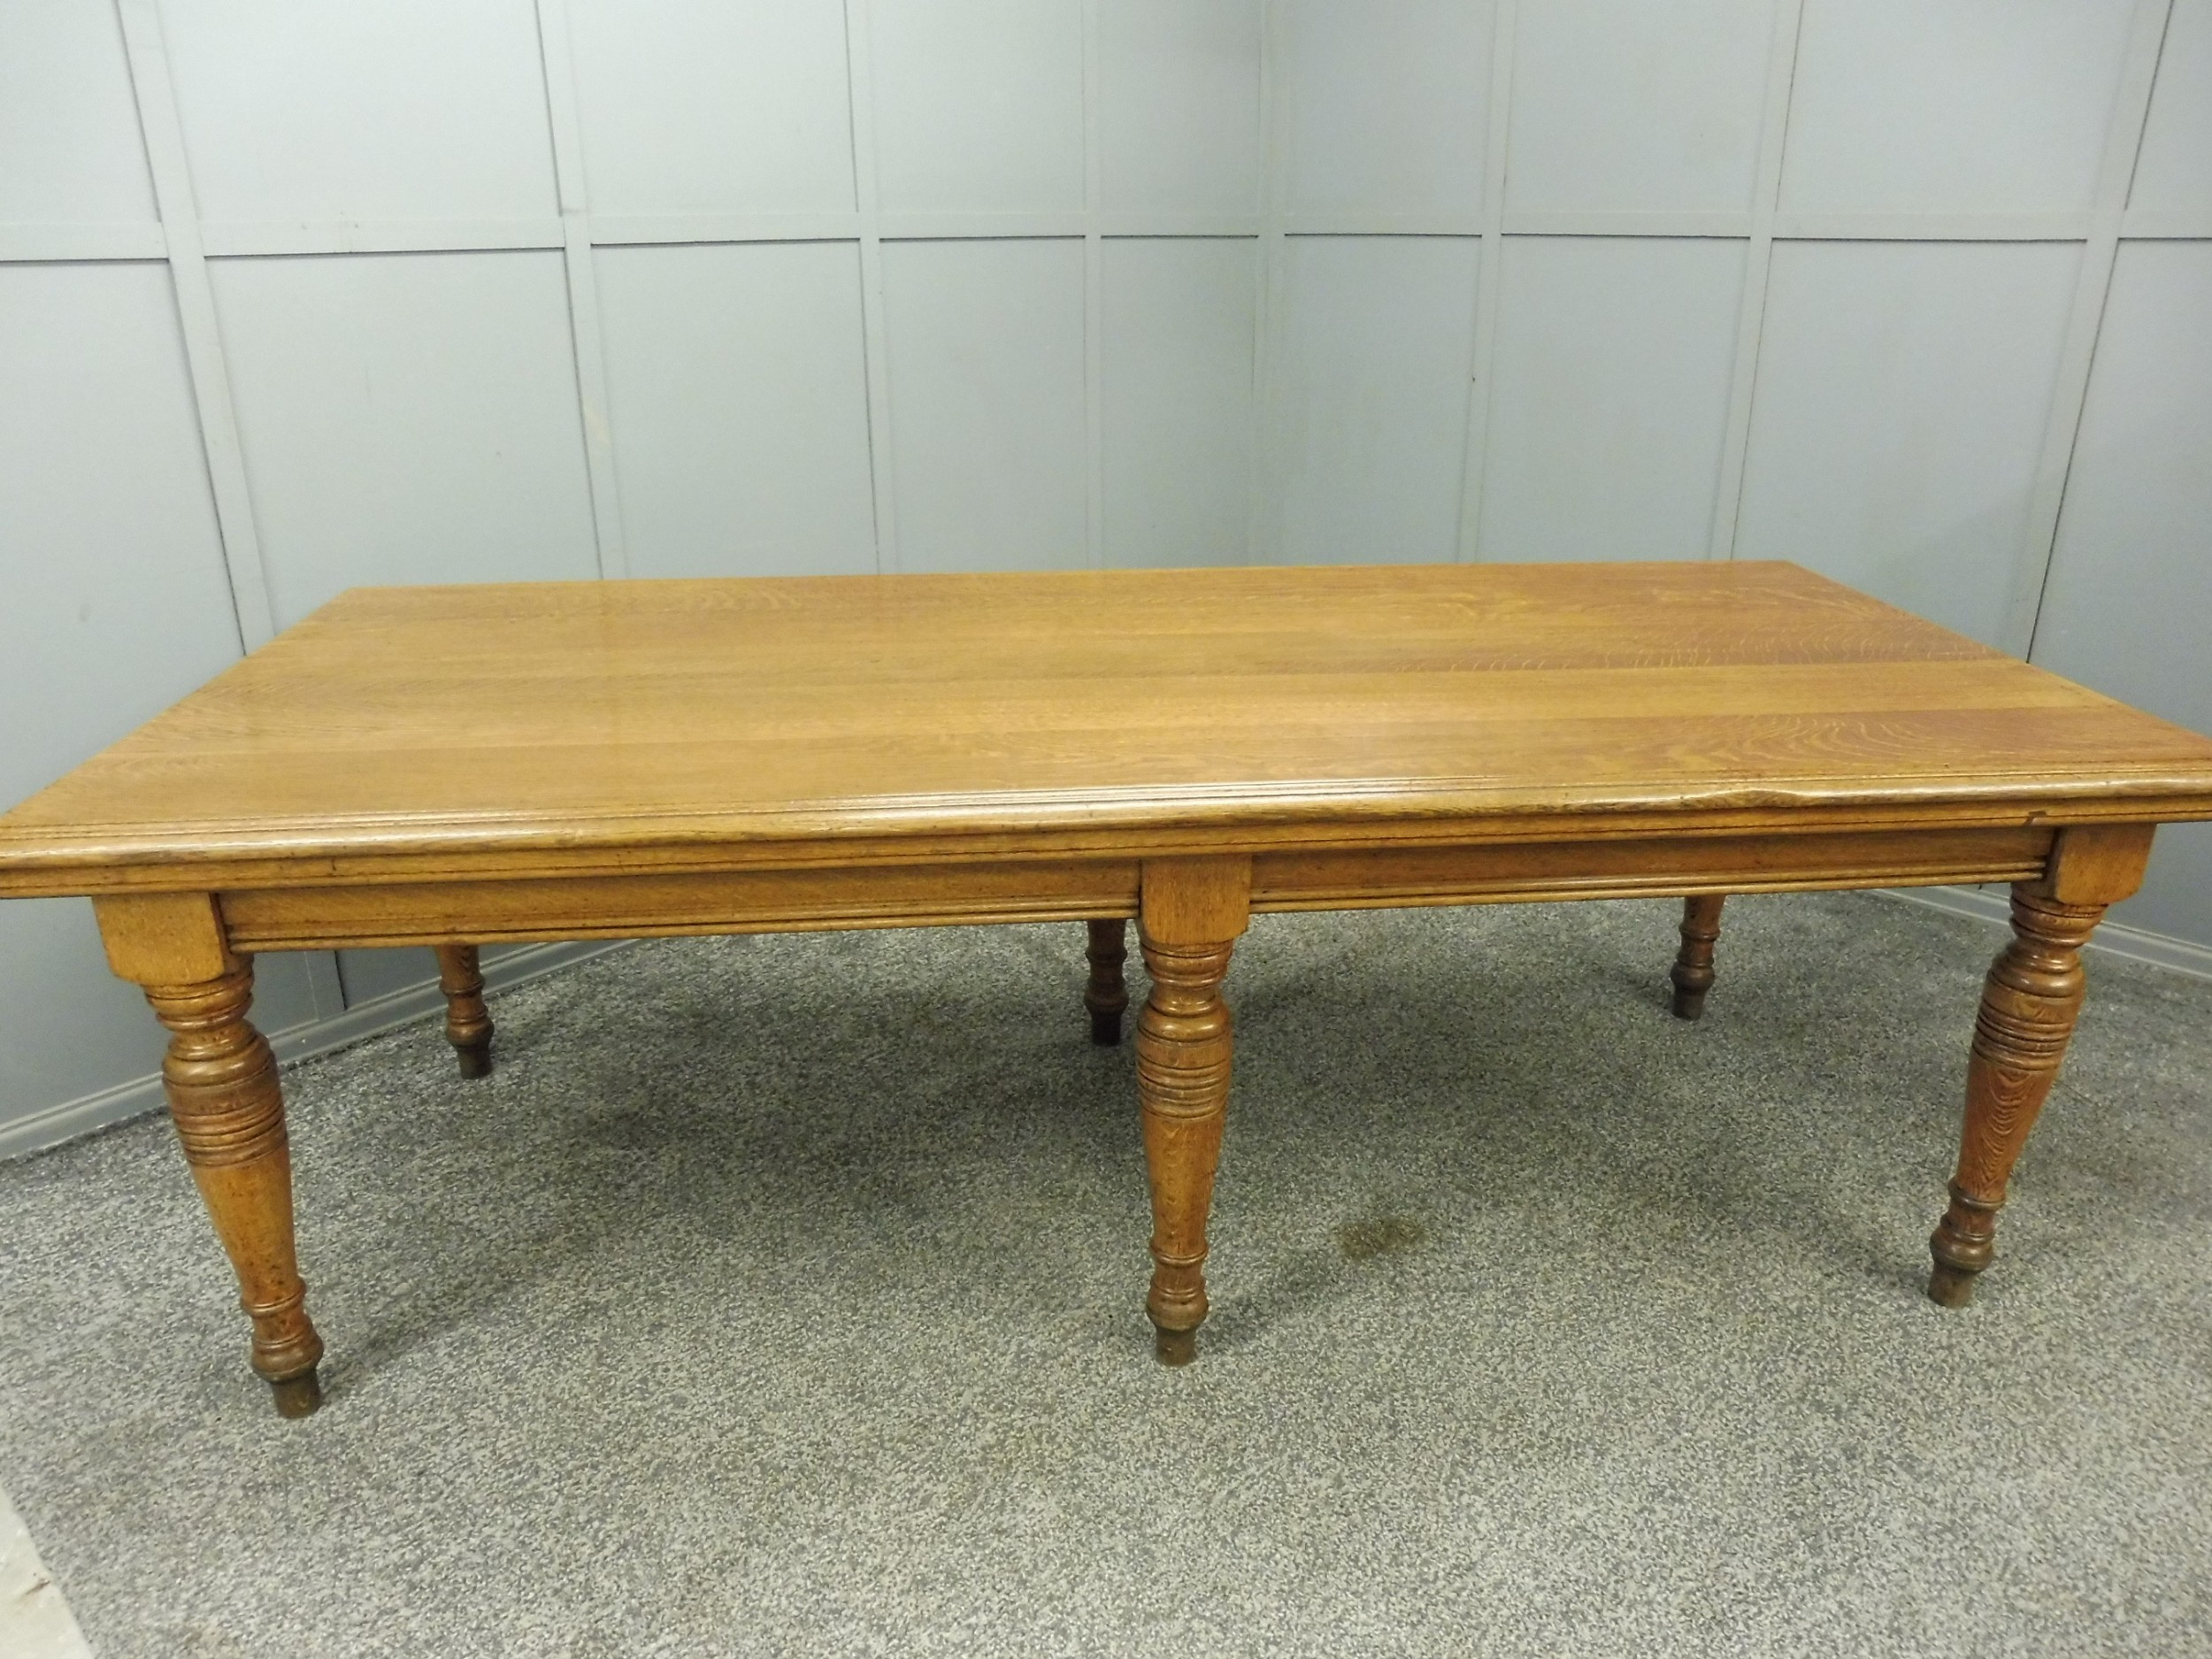 19th century school dining table